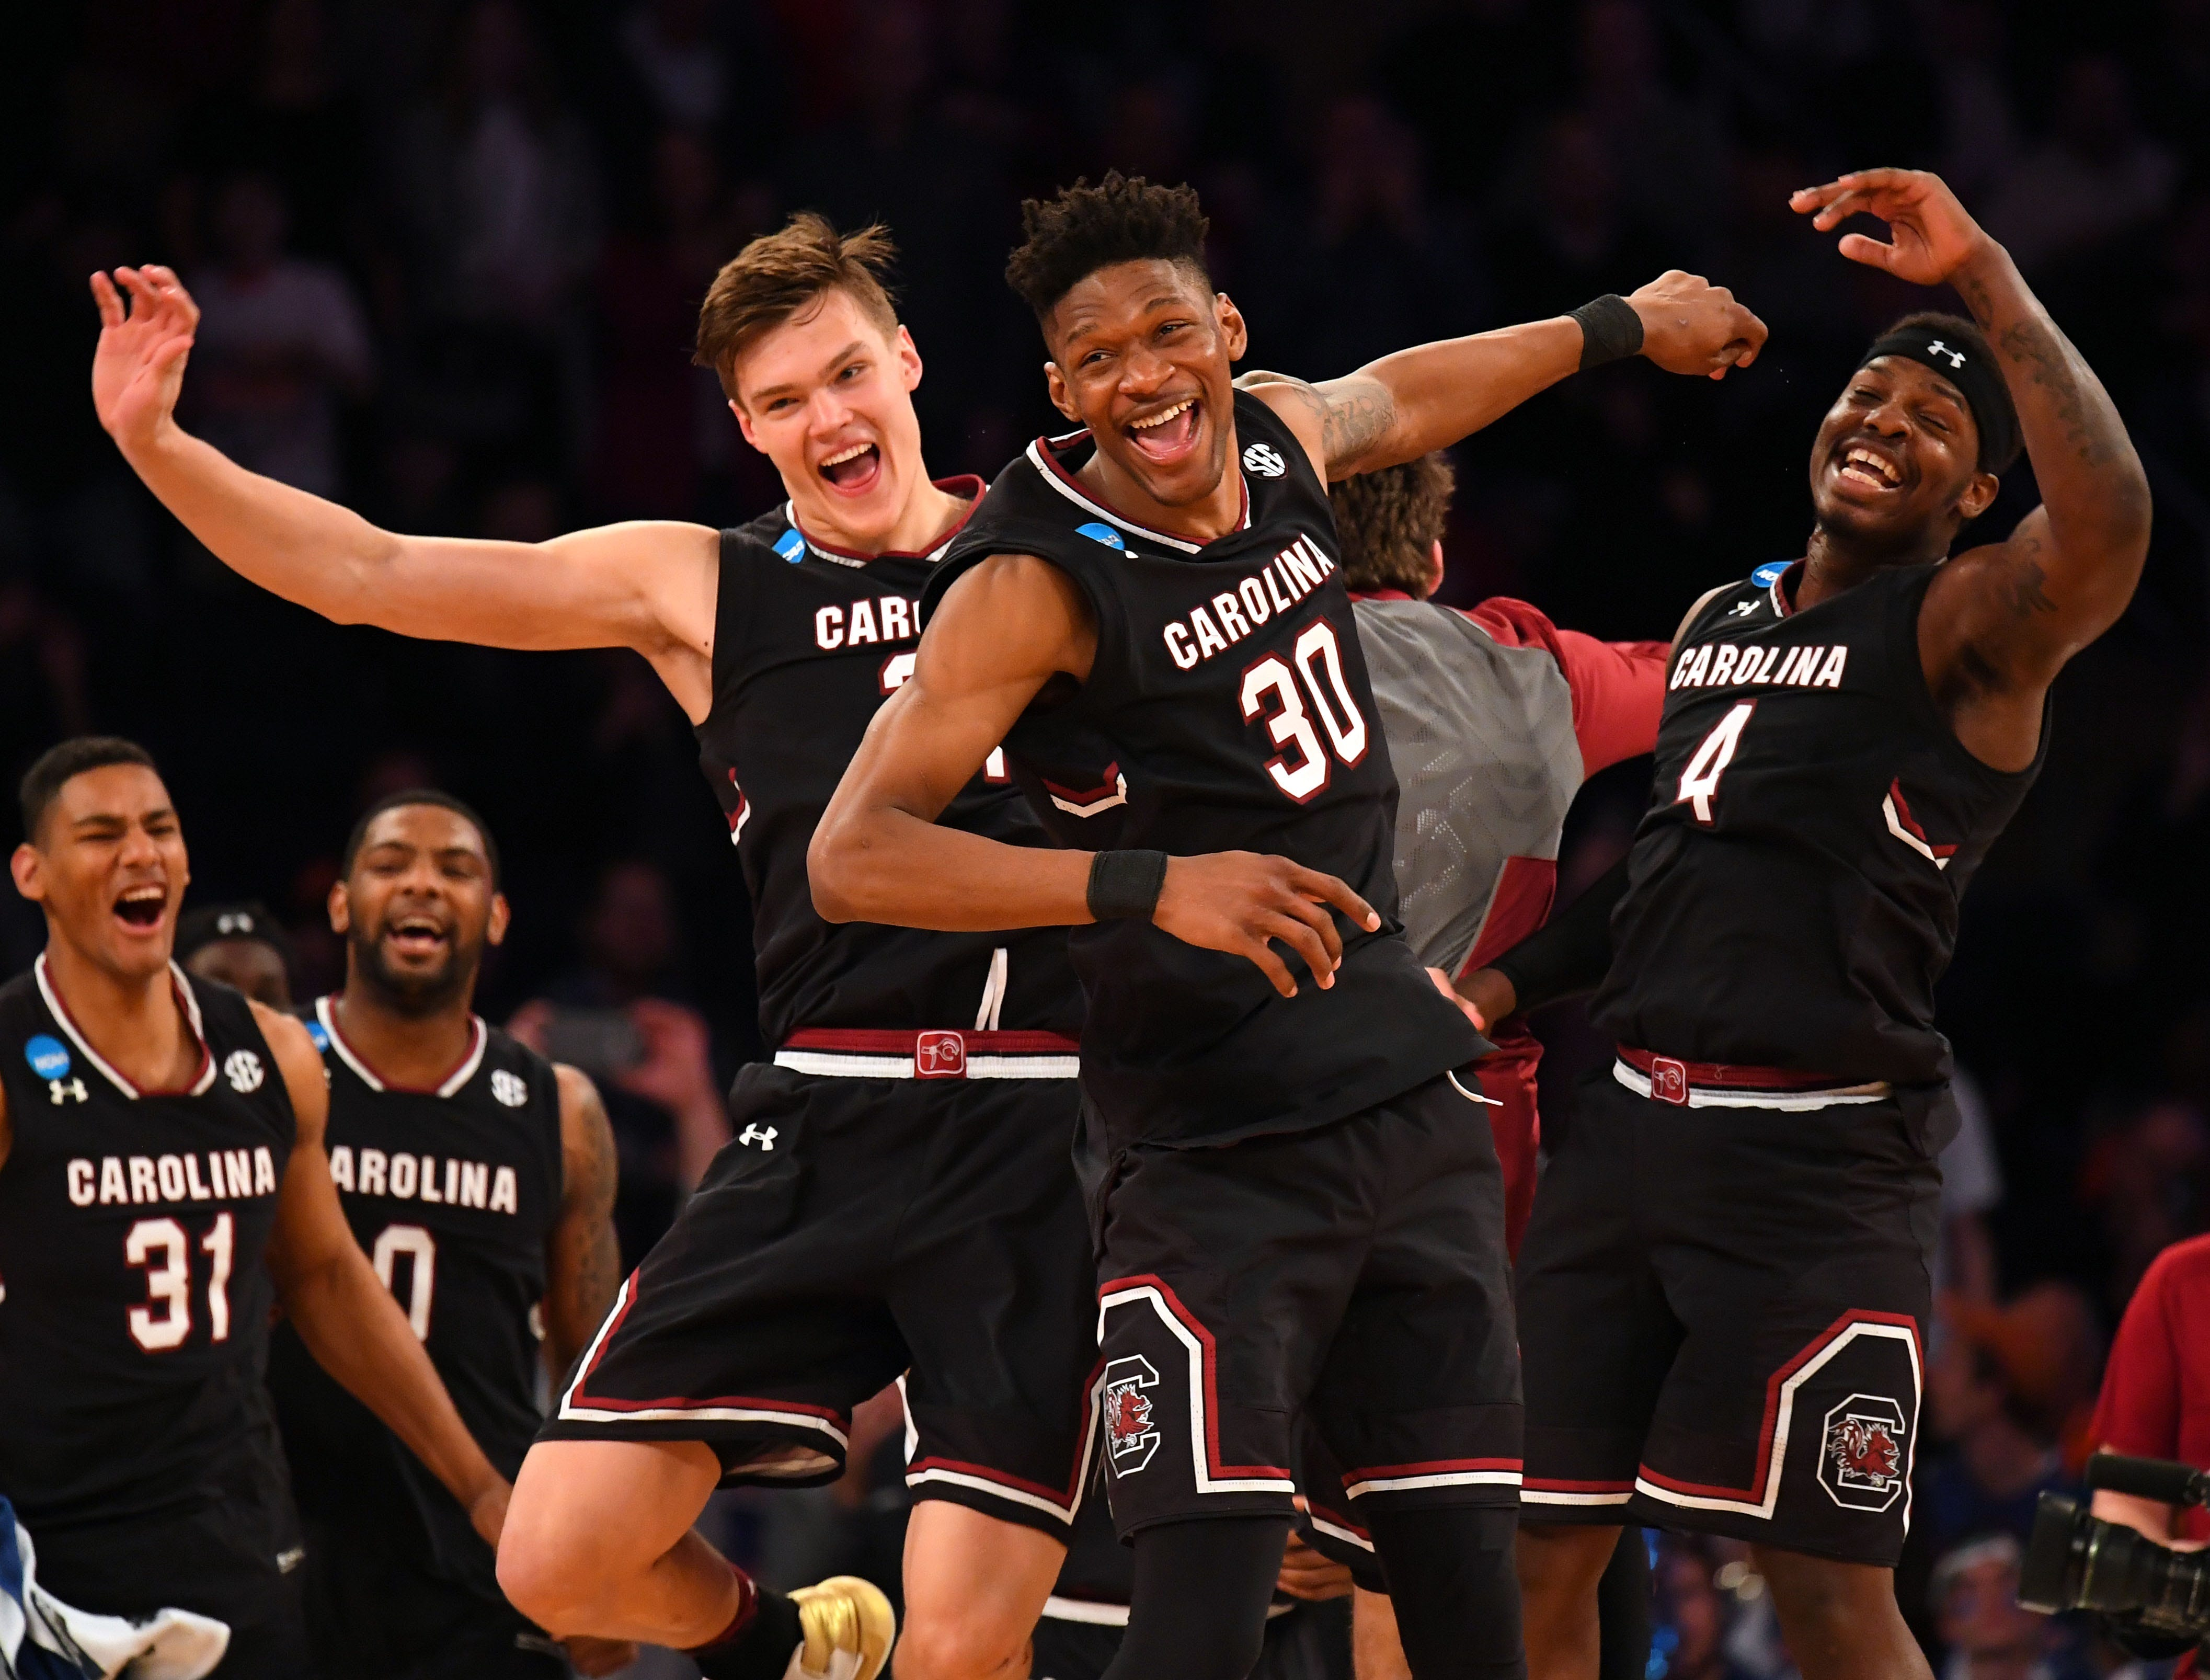 Watch: South Carolina's classy move after routing Baylor